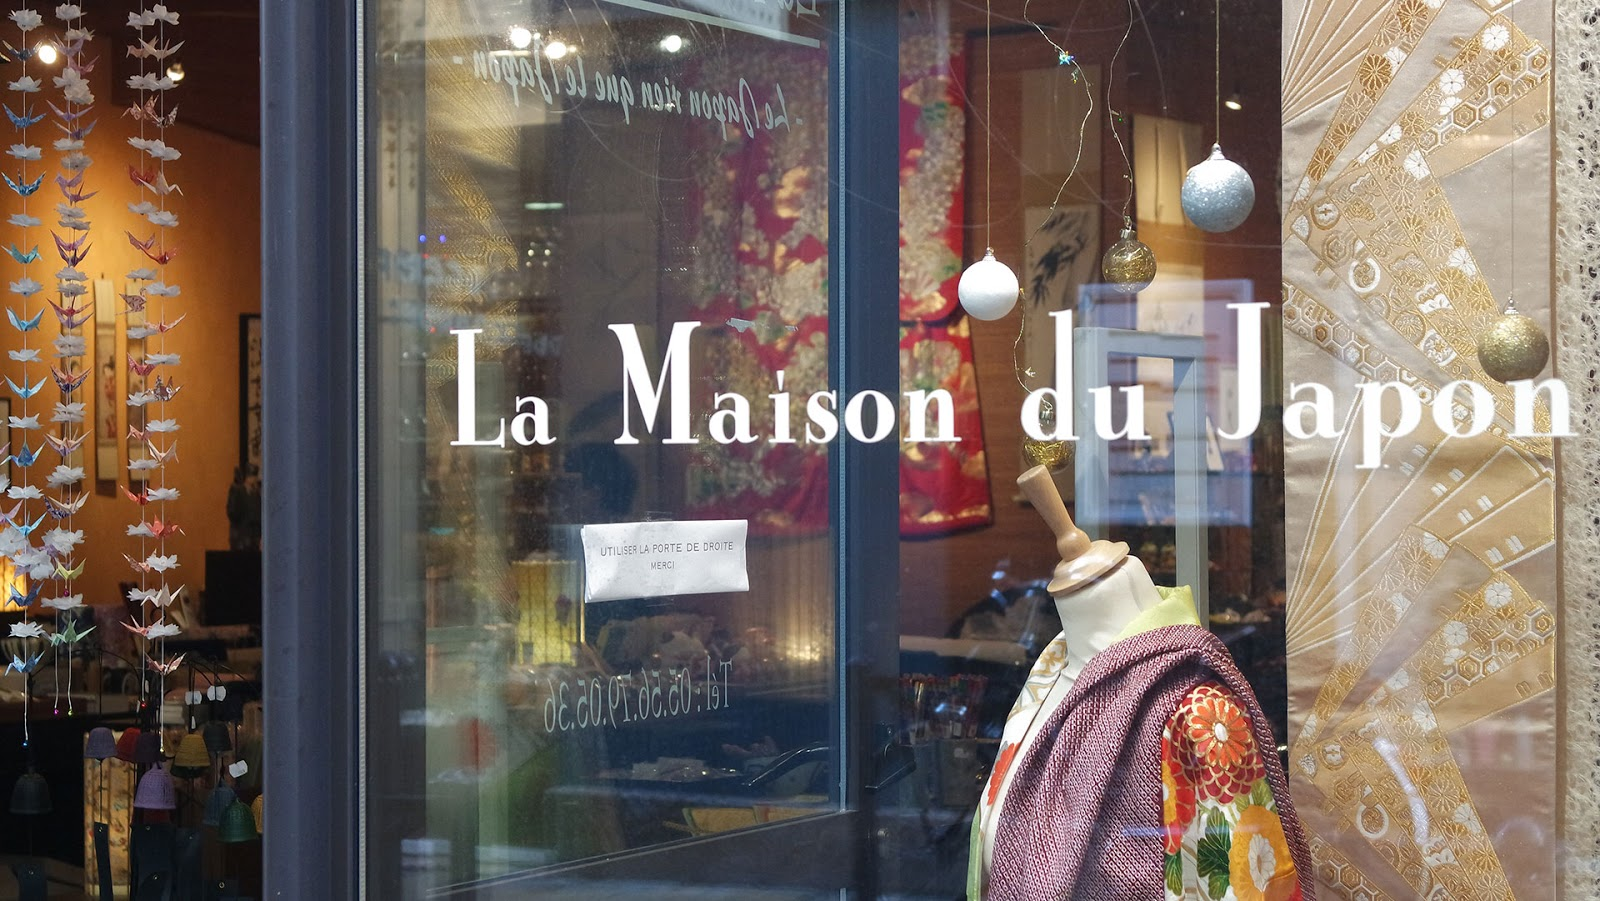 Showcase of La Maison du Japon